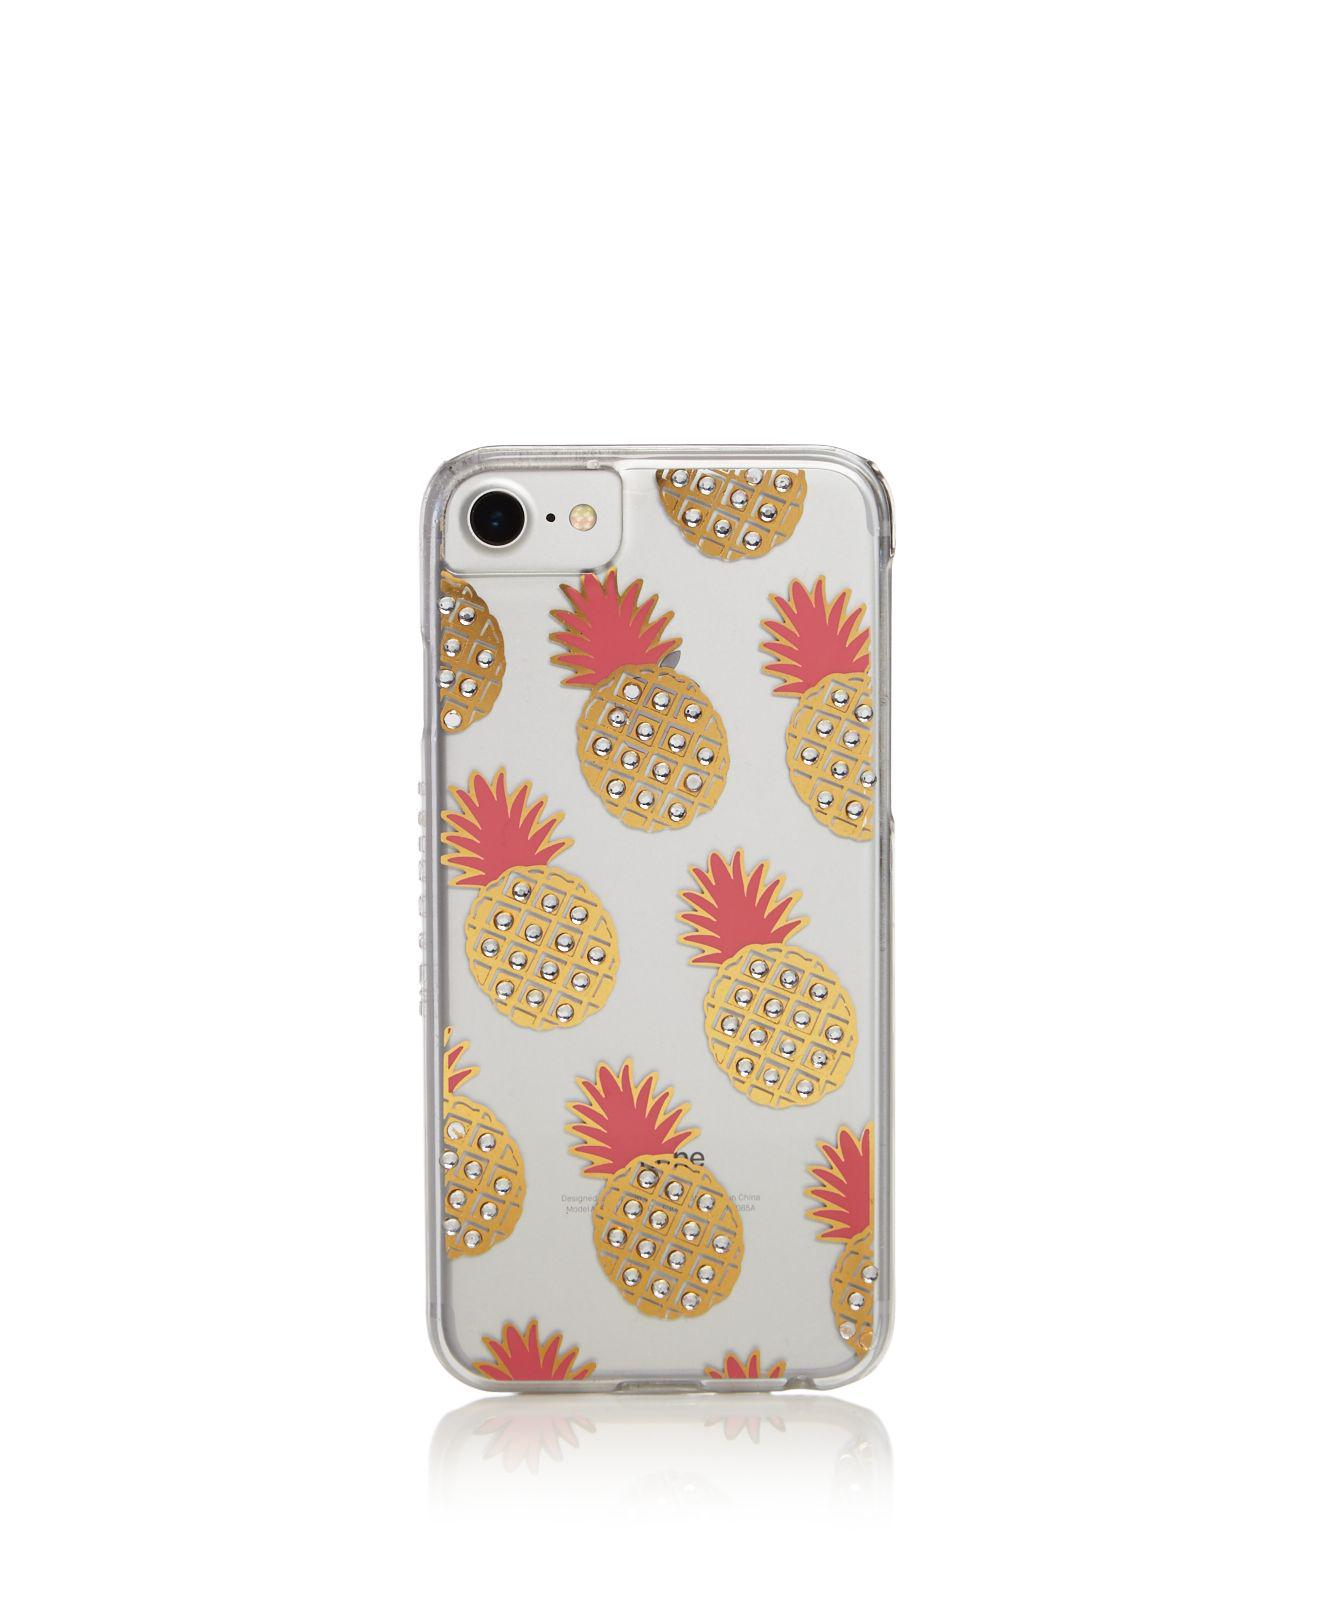 factory authentic 22ee0 3bf3c Skinnydip London Metallic Pink Pineapple Iphone 6/7 Case